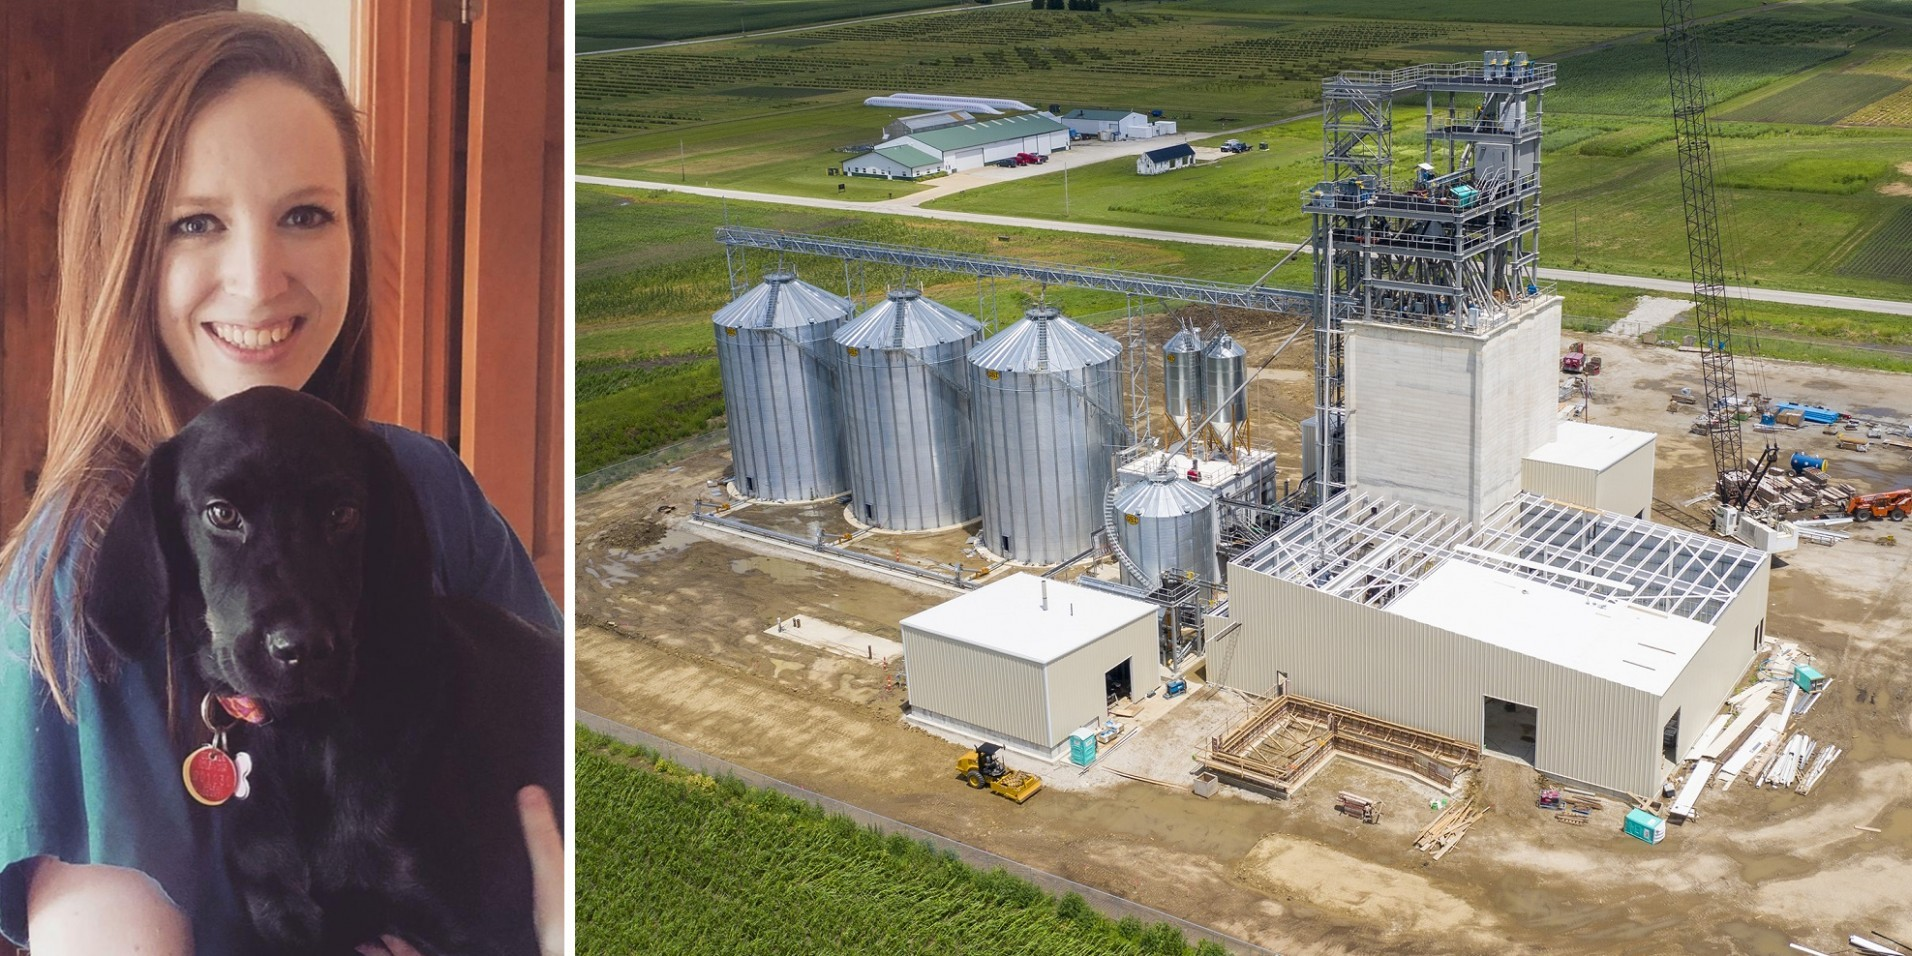 Lauren Reilly and Feed Technology Center